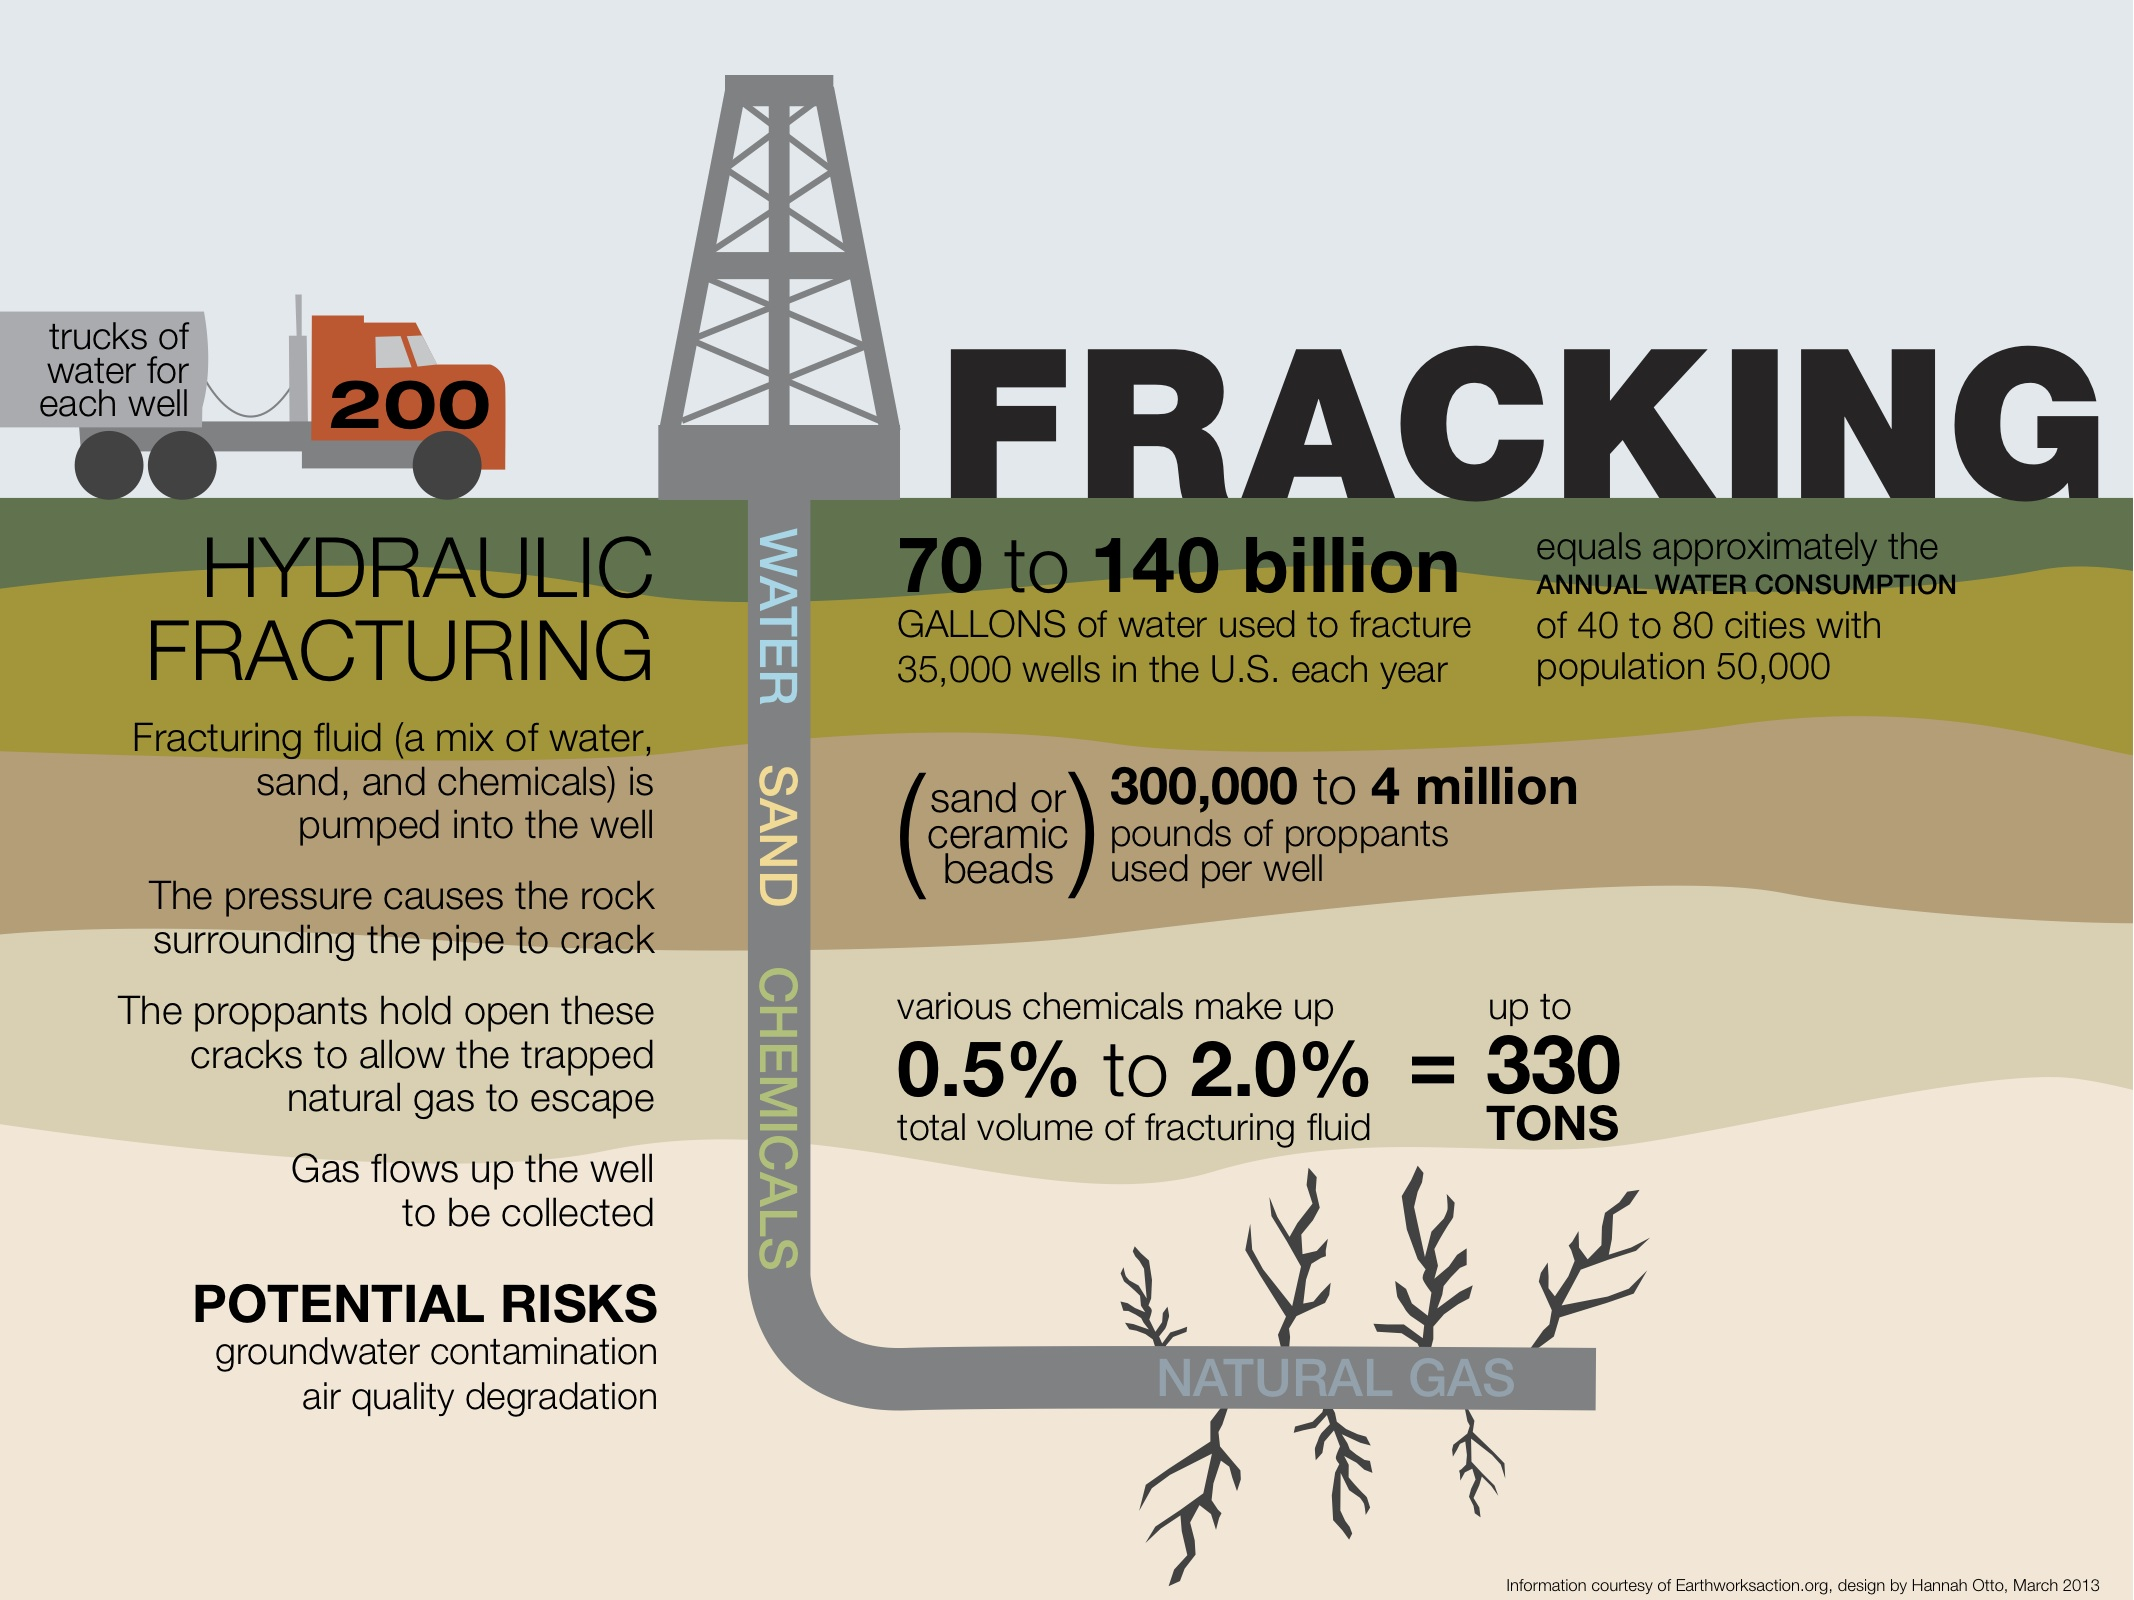 Fracking infographic displaying water usage